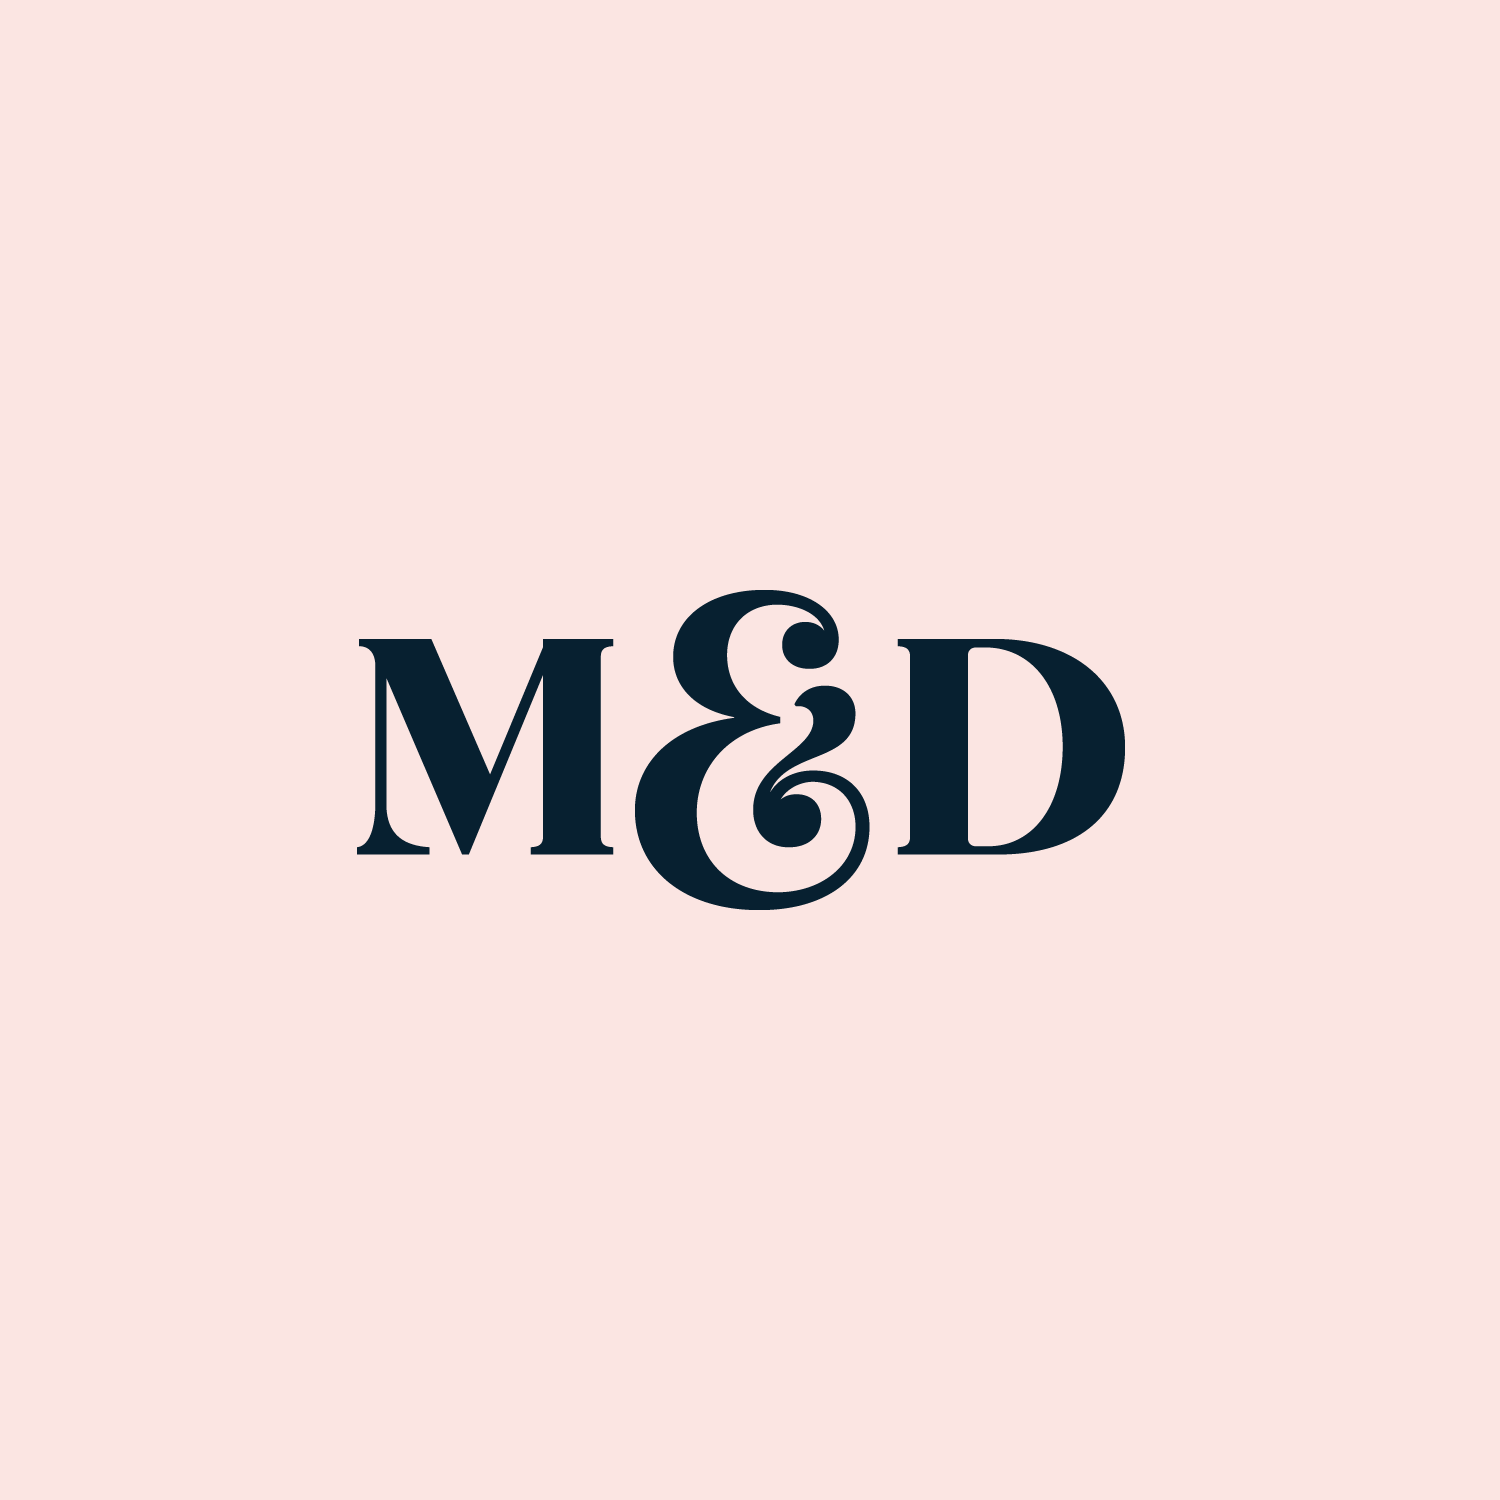 Blue M&D Ten Years monogram on a light pink background